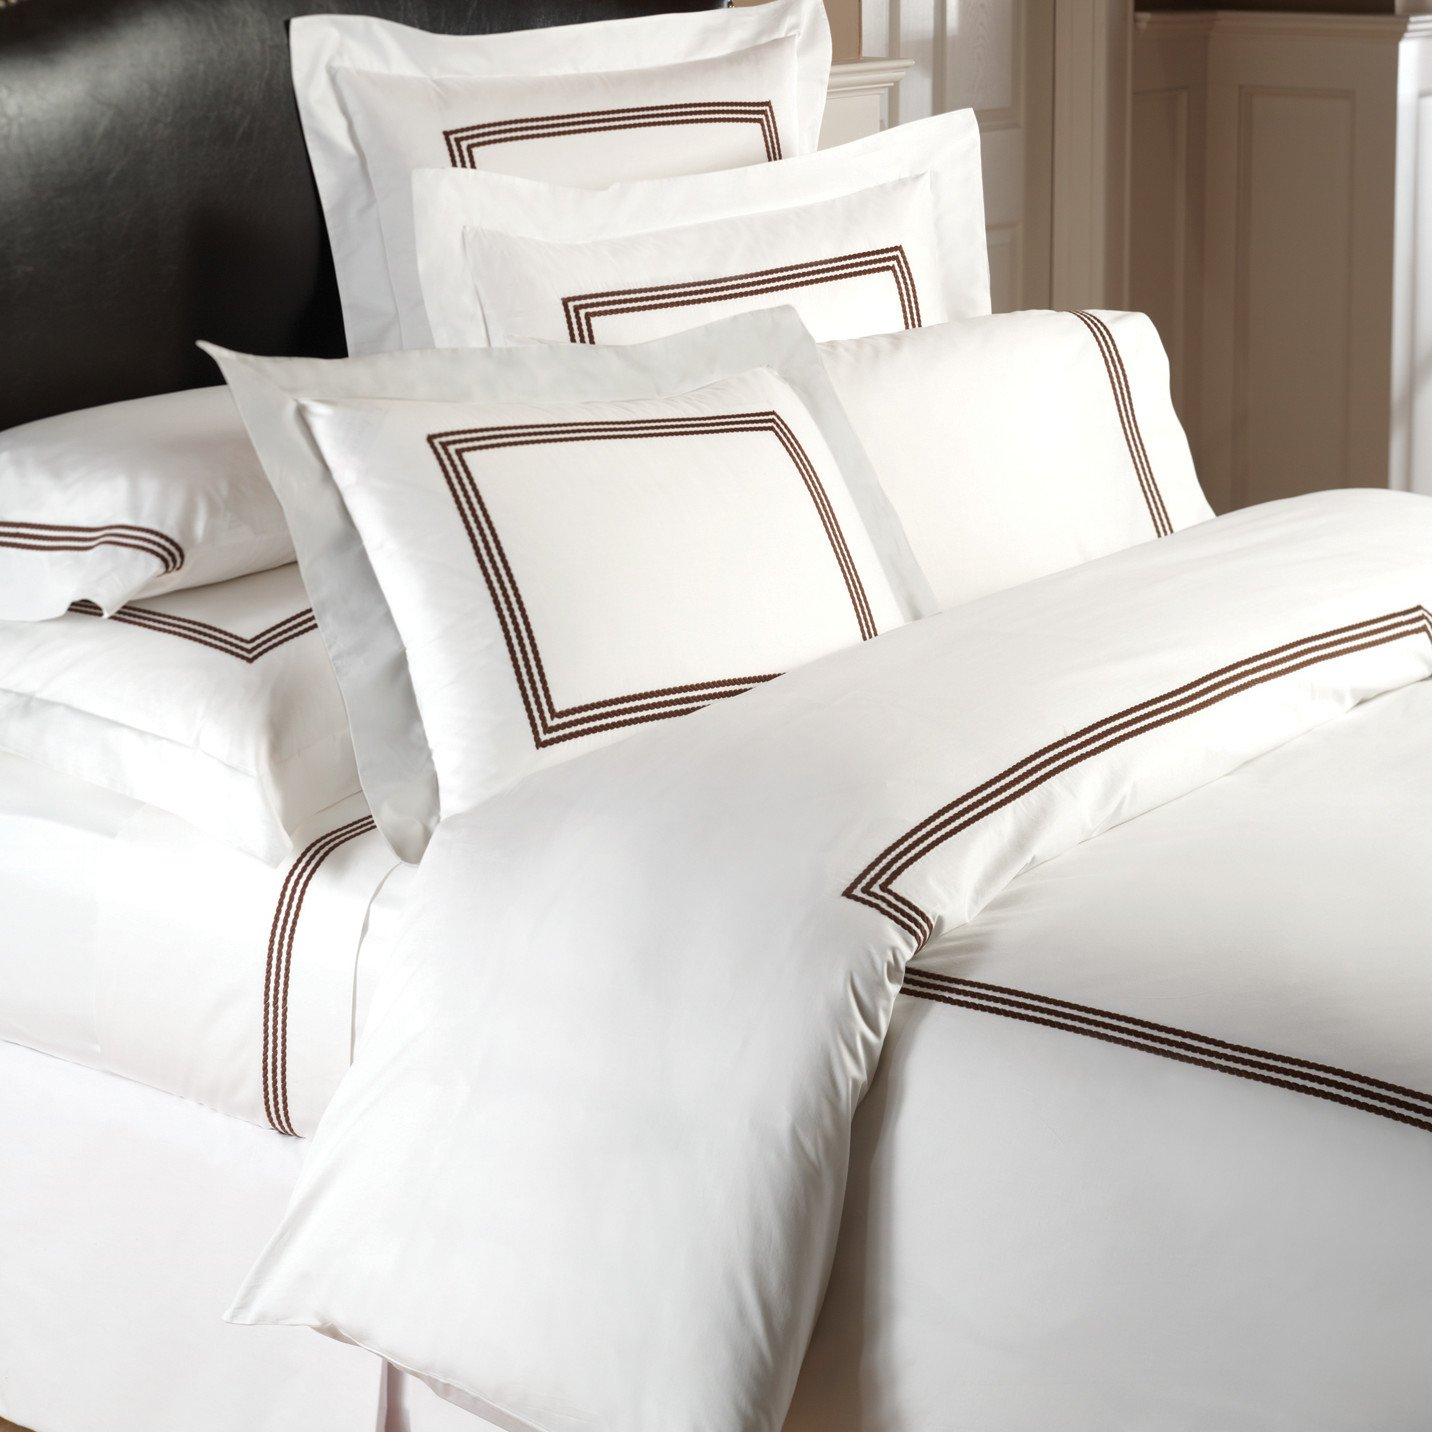 Windsor White Queen Duvet Cover with Chocolate Embroidery